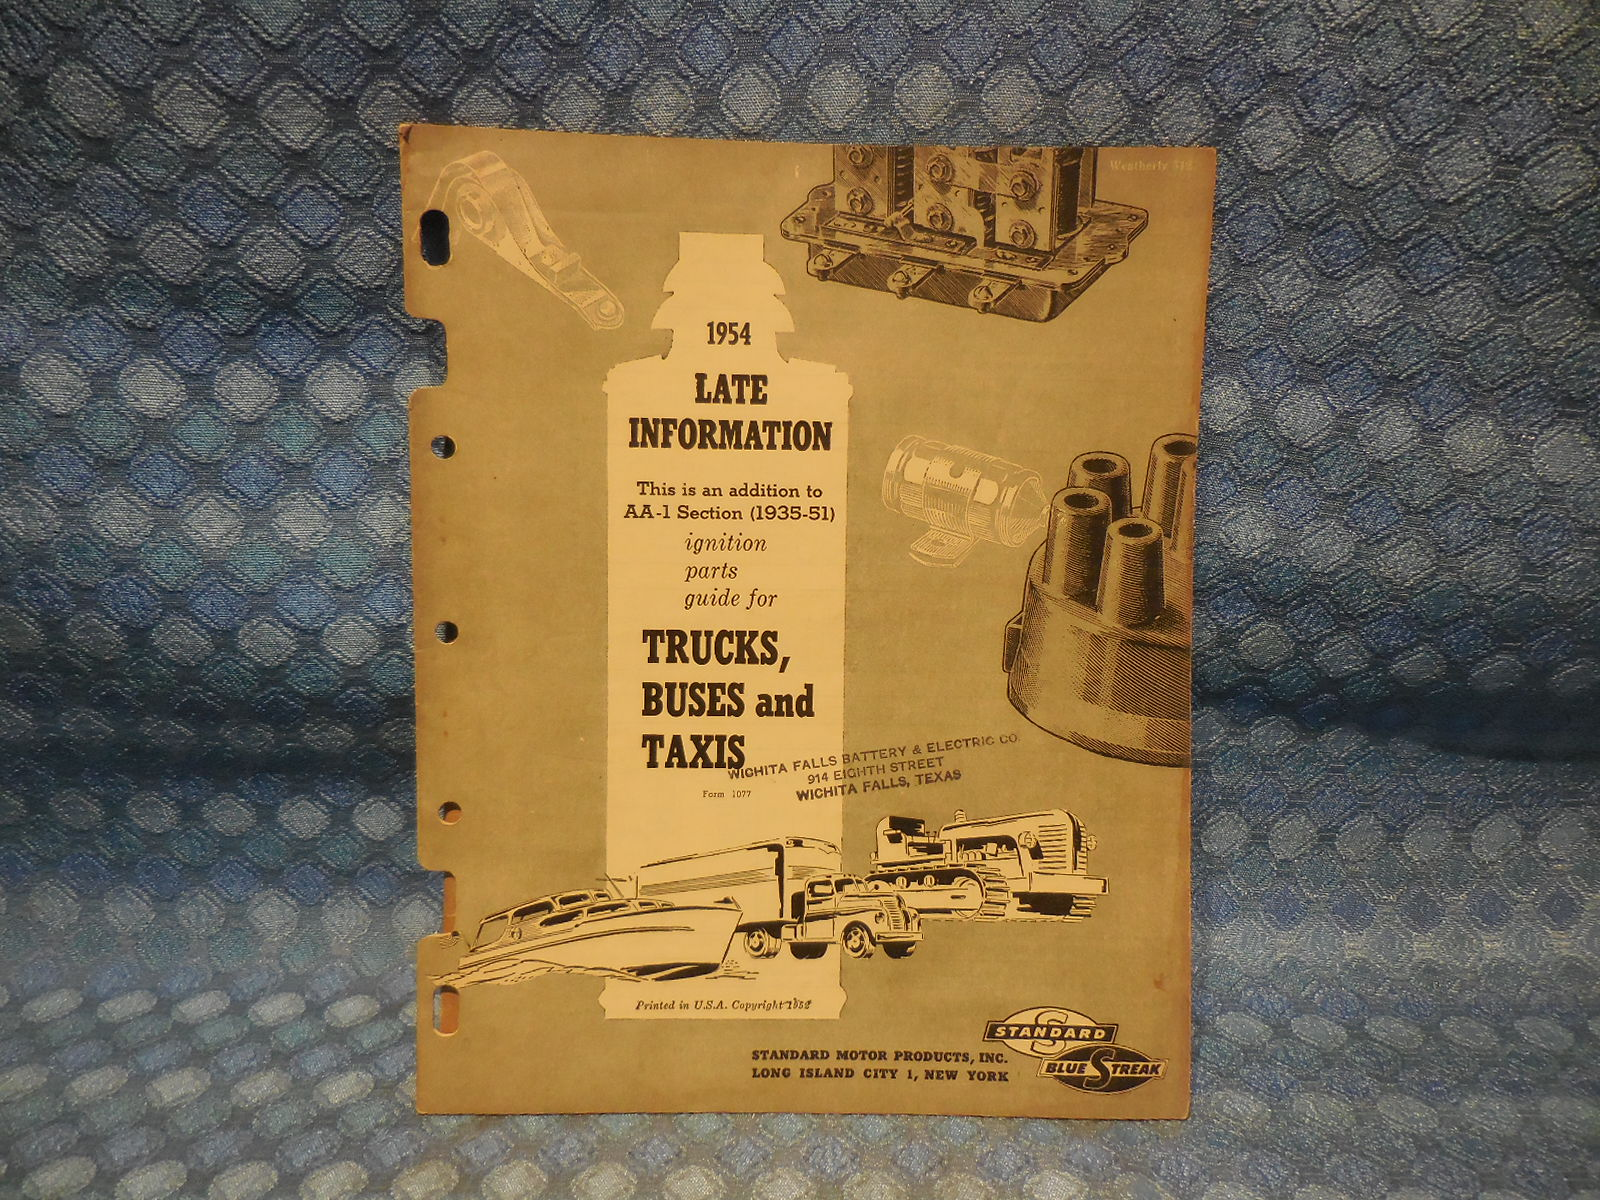 1951 Reo Wiring Diagram Another Blog About 1935 Ford Ignition 1954 Blue Streak Original Truck Parts Catalog Gmc Rh Nostexasparts Com